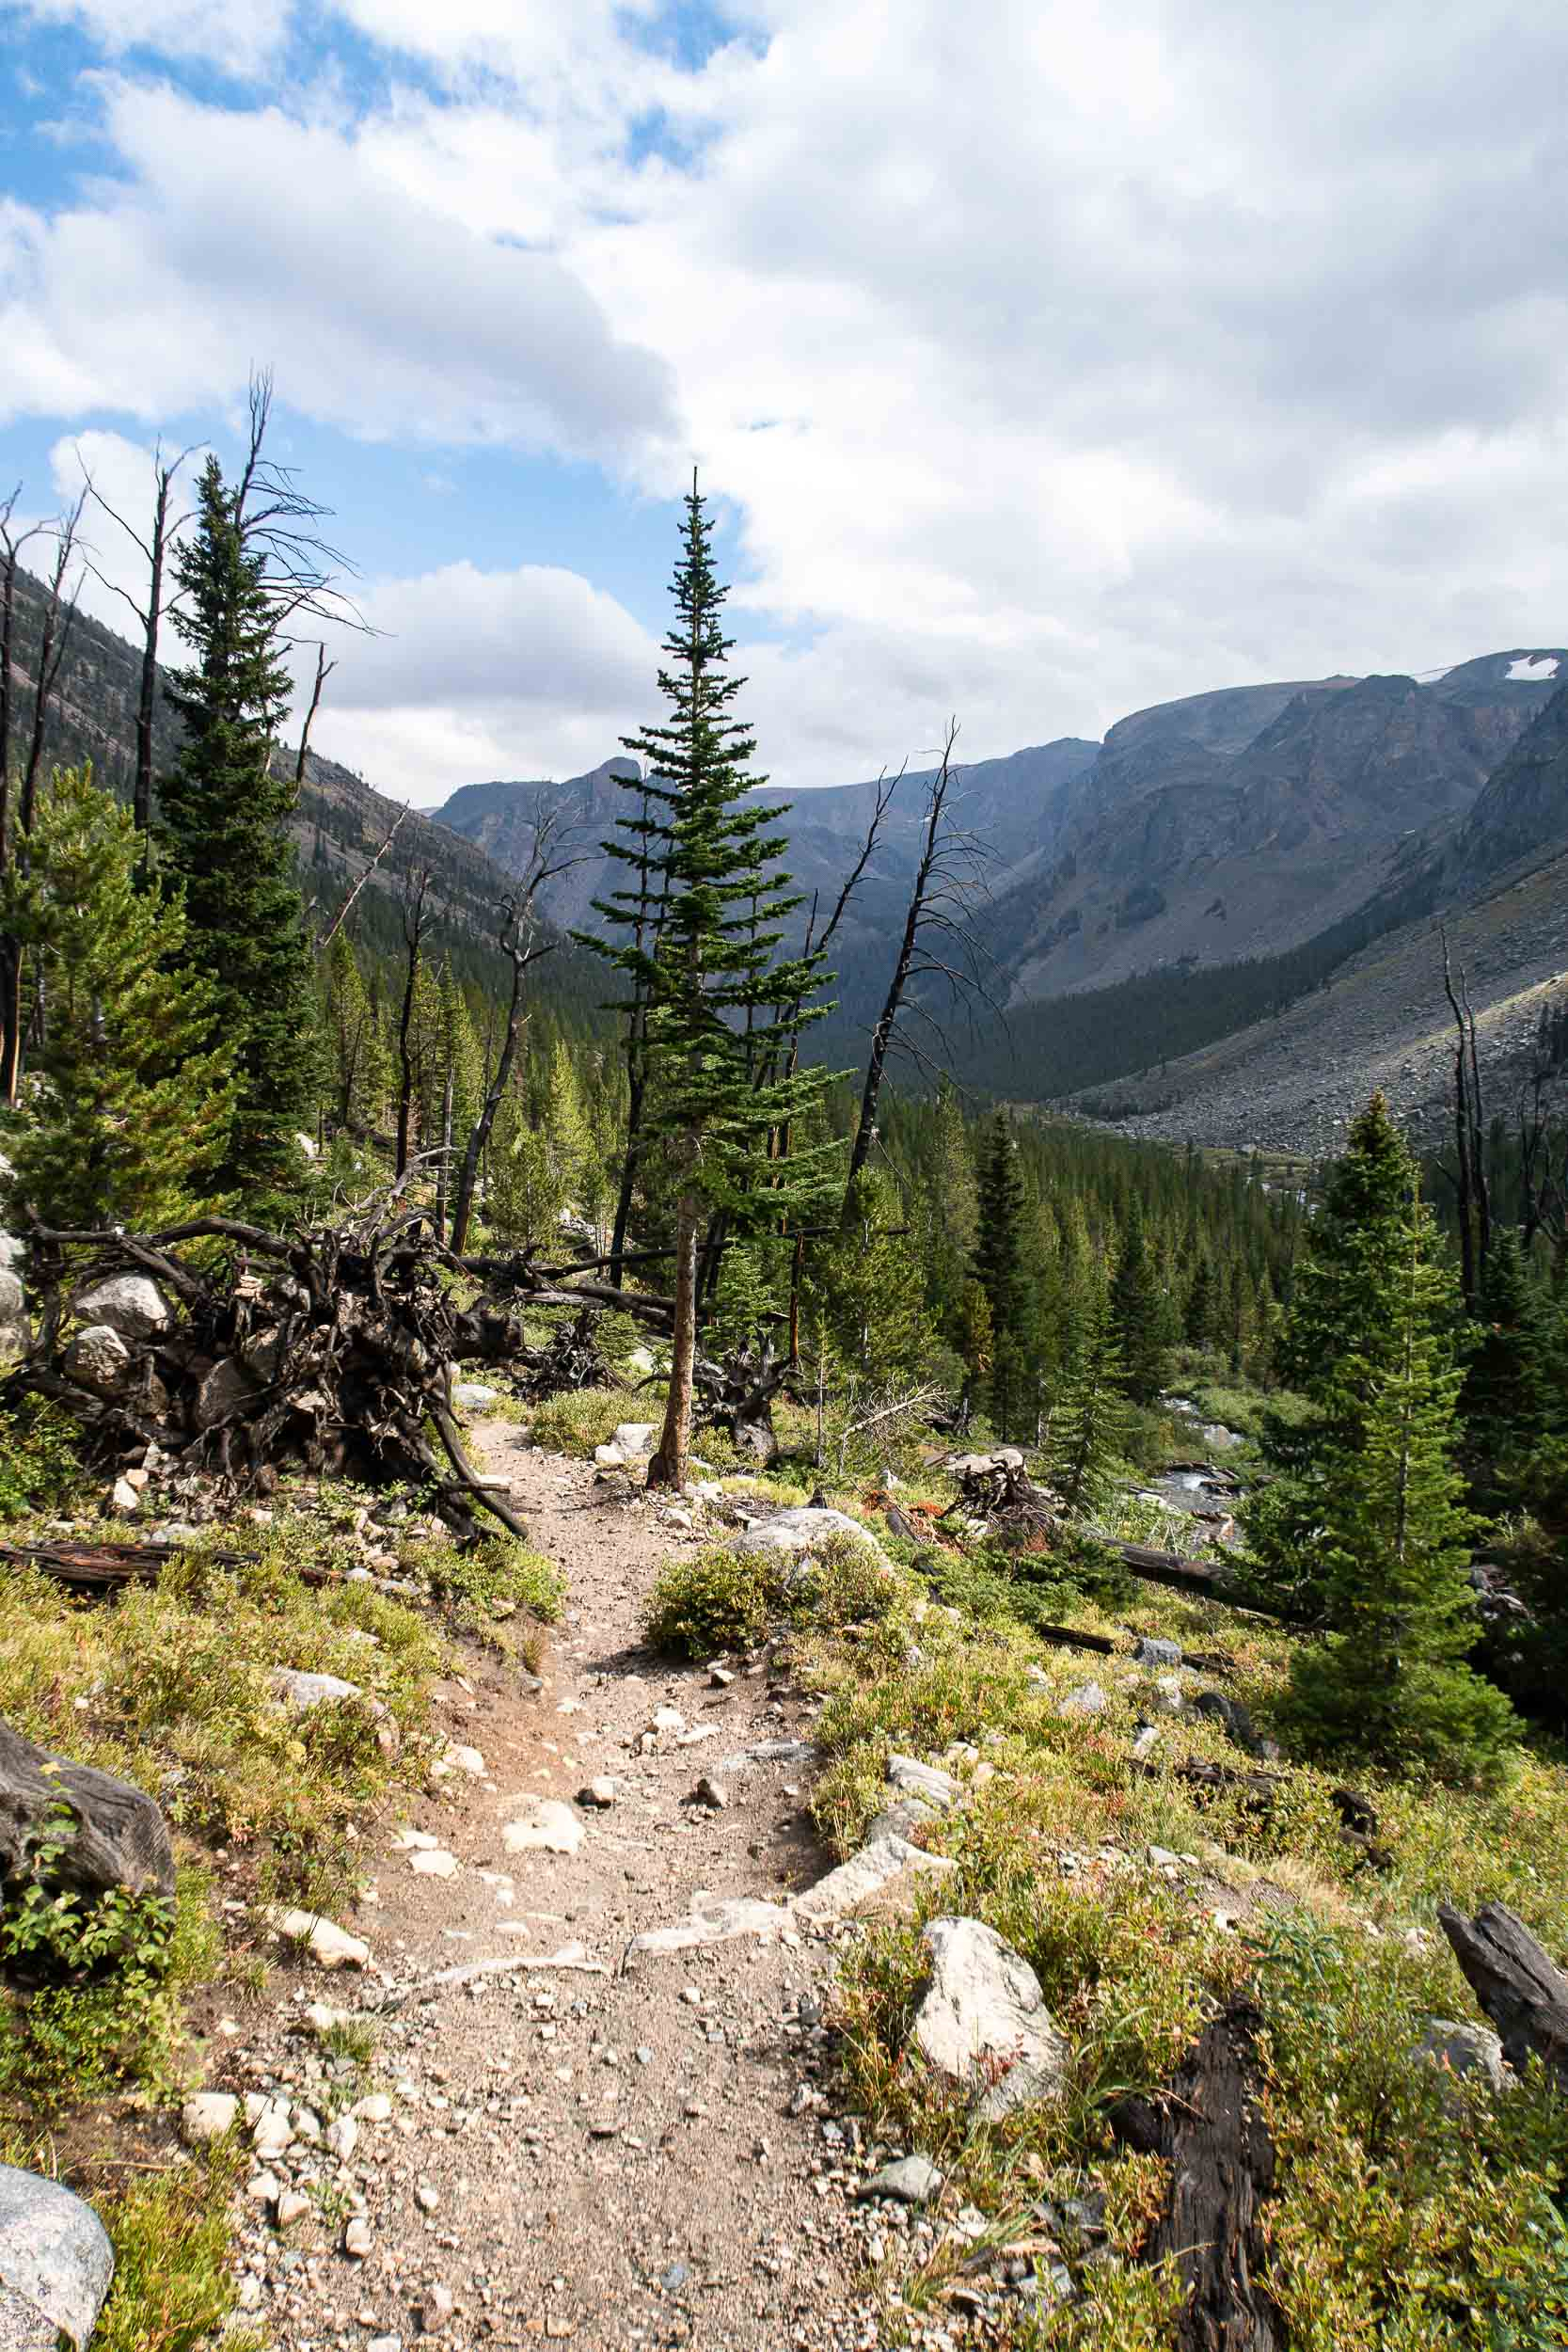 Glacier Lake is a 4.6 mile moderately trafficked out and back trail located near Red Lodge that contains beautiful views, wildflowers, raspberries, and huckleberries.